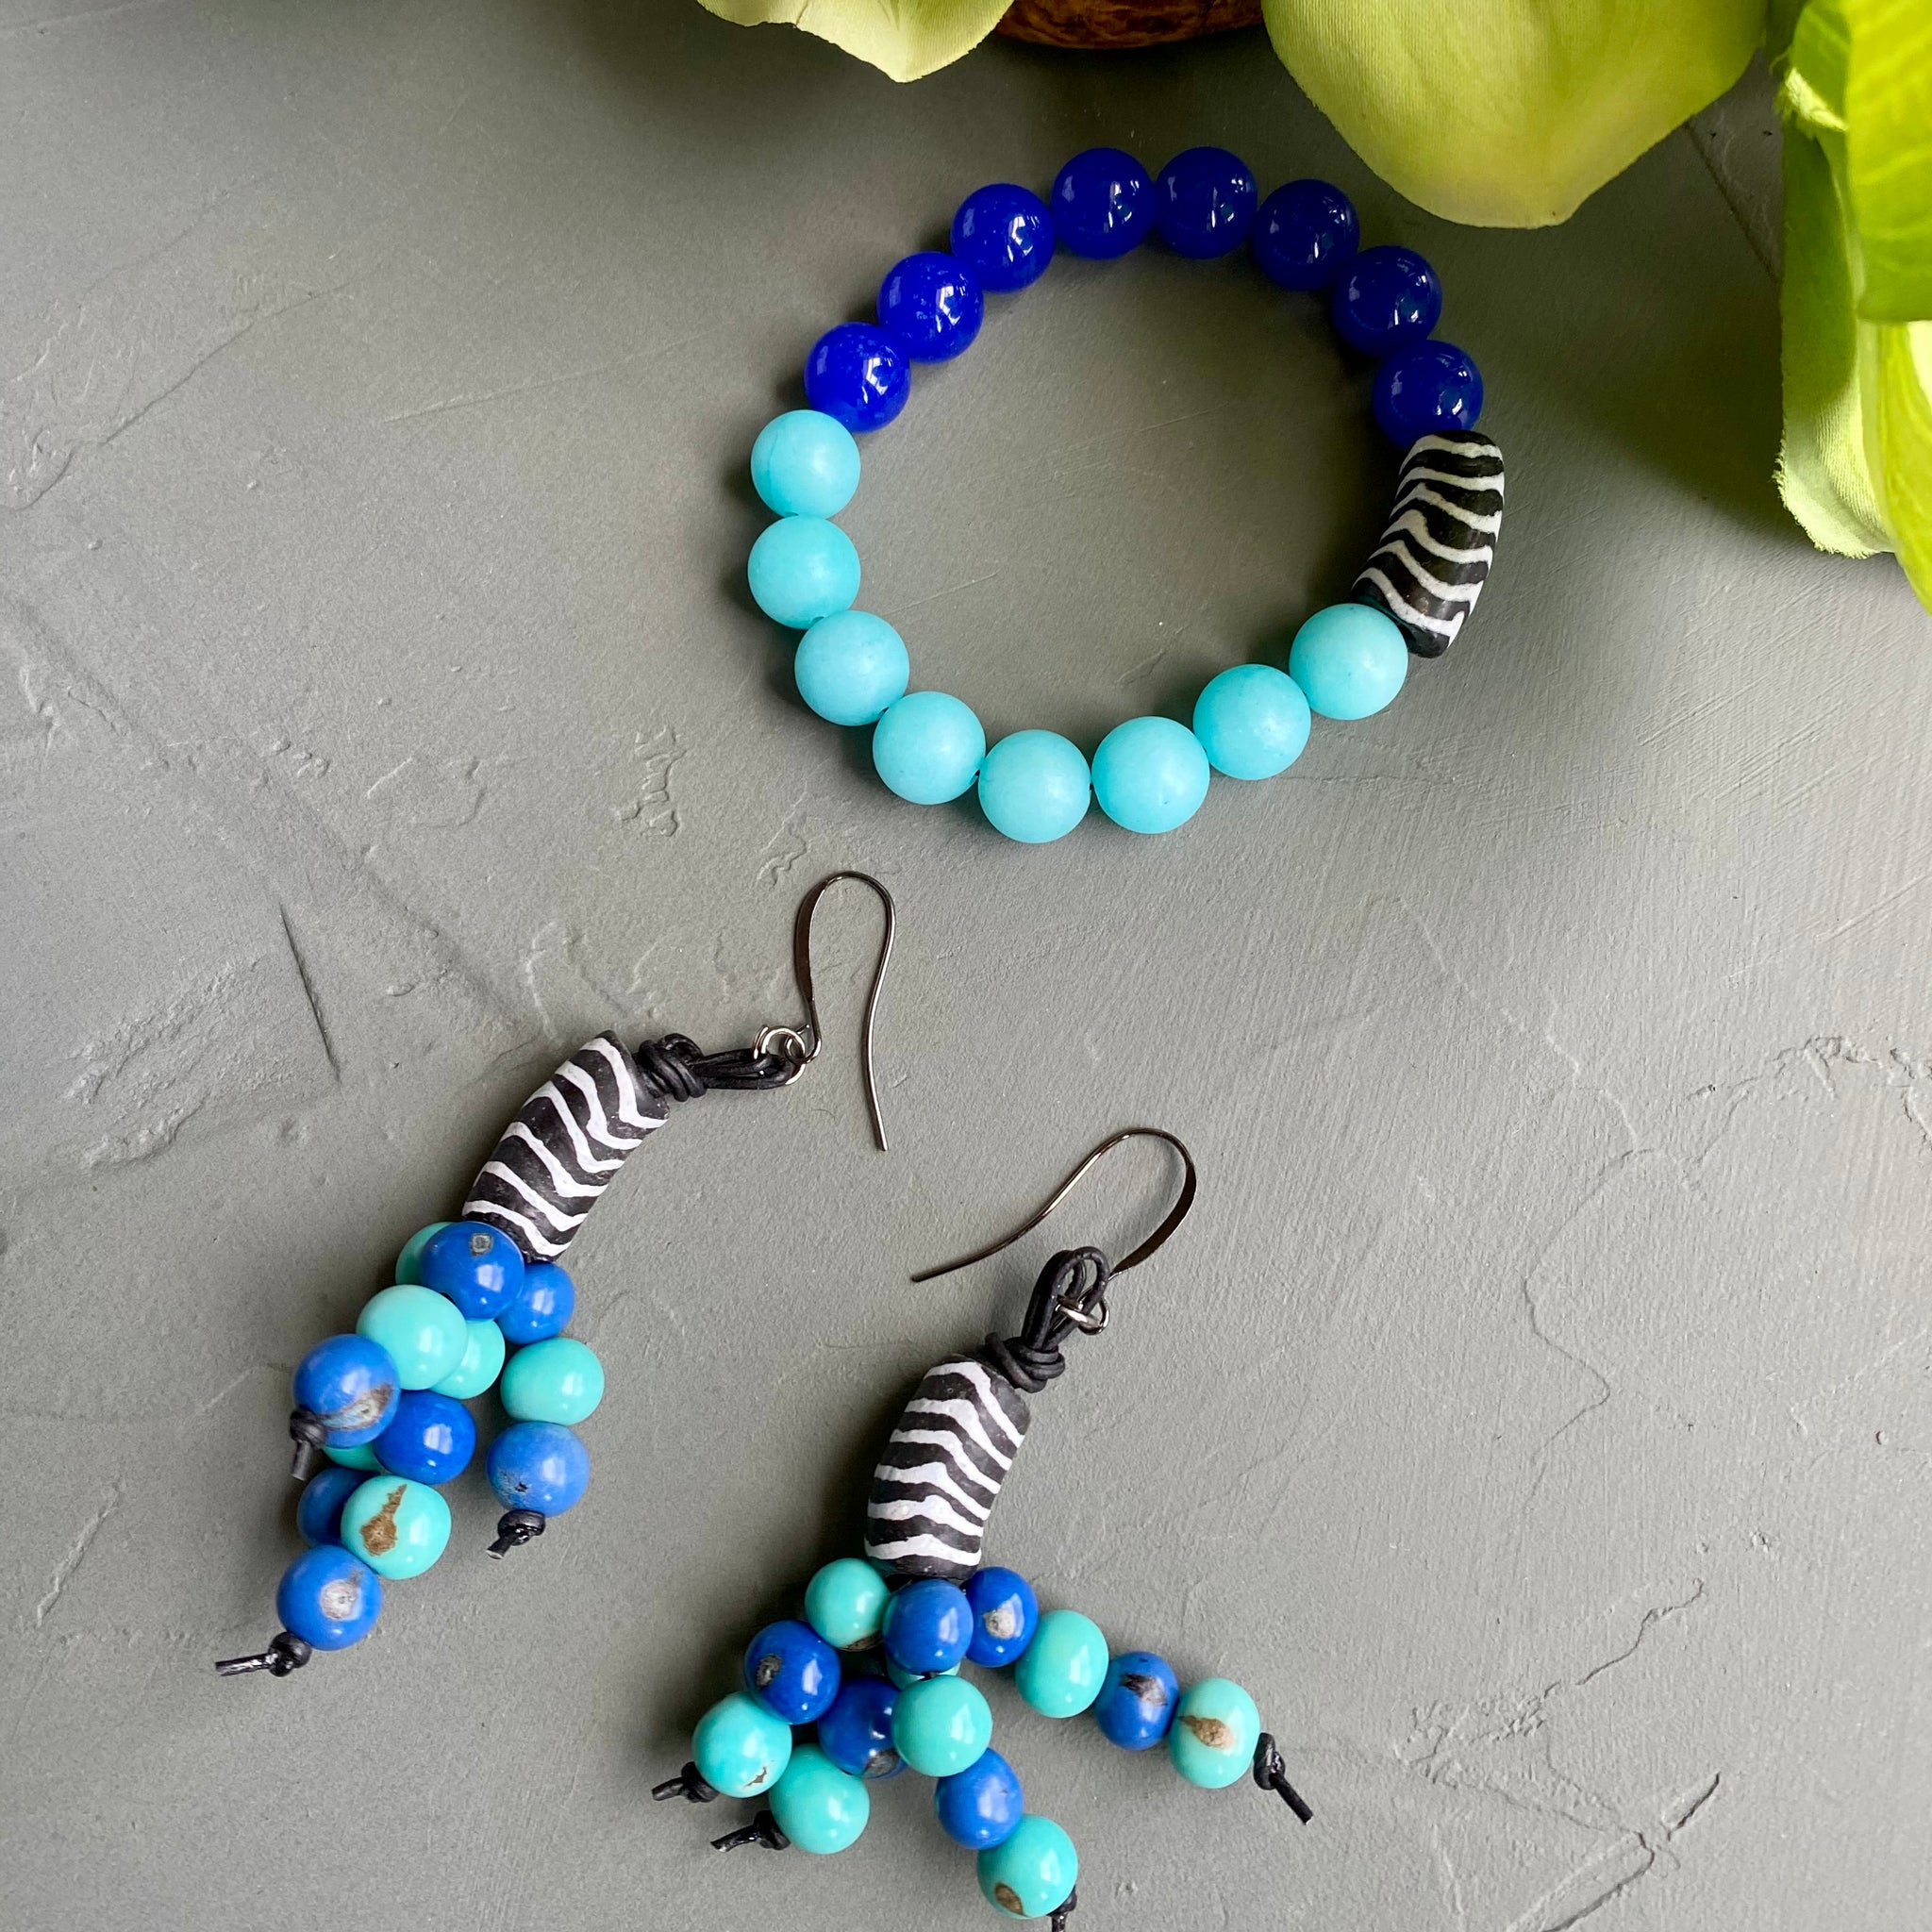 Black & White African Krobo with Shades of Blue Acai Bead Earrings